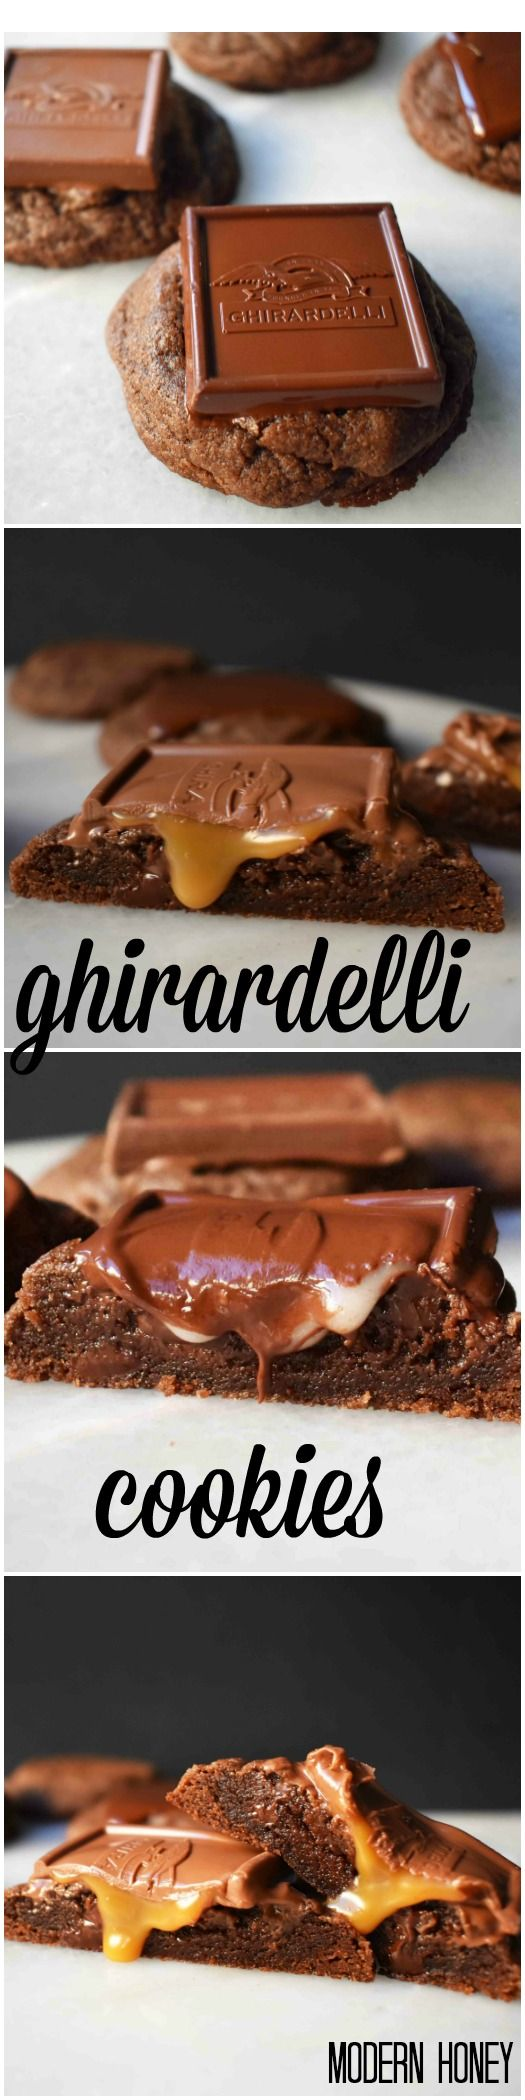 Ghirardelli Squares Chocolate Cookies. Rich double chocolate cookies topped with caramel filled chocolate. Can be topped with any Ghirardelli chocolate square from chocolate mint to sea salt almond. A huge crowd favorite cookie!